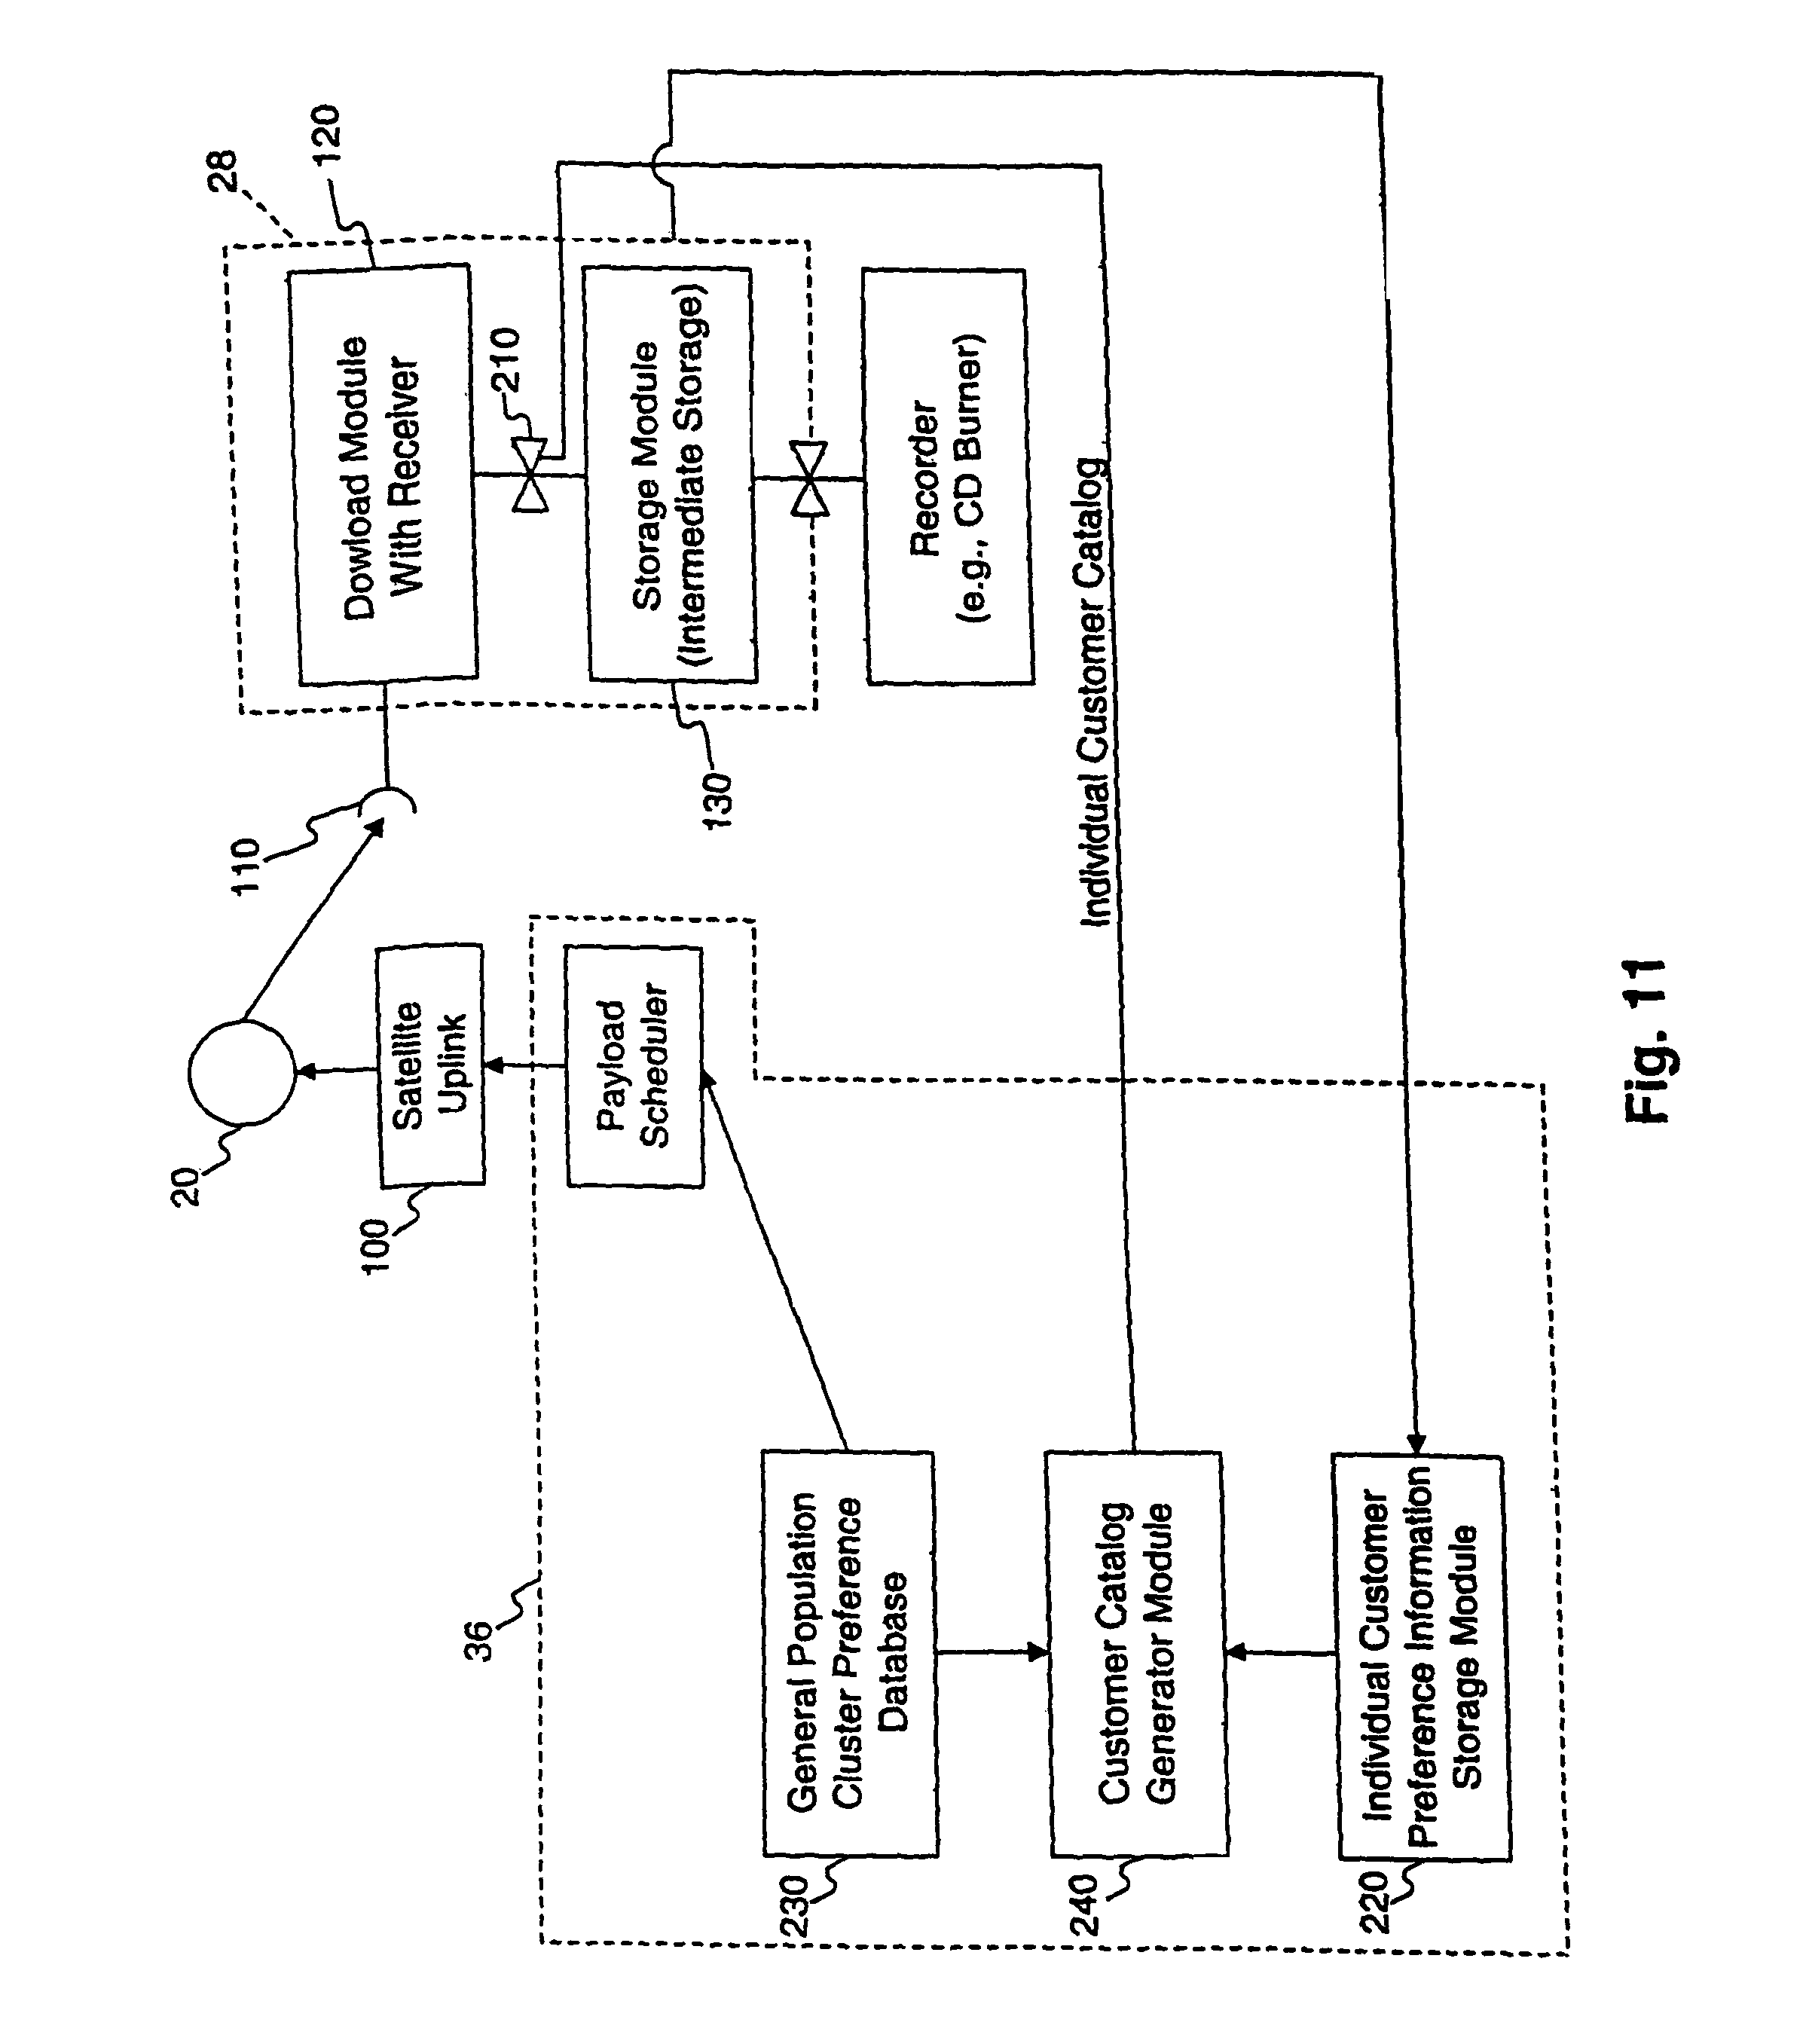 Patent Us 9659285 B2 Infraredled Based Wireless Data Voice Communication With Circuit 0 Petitions